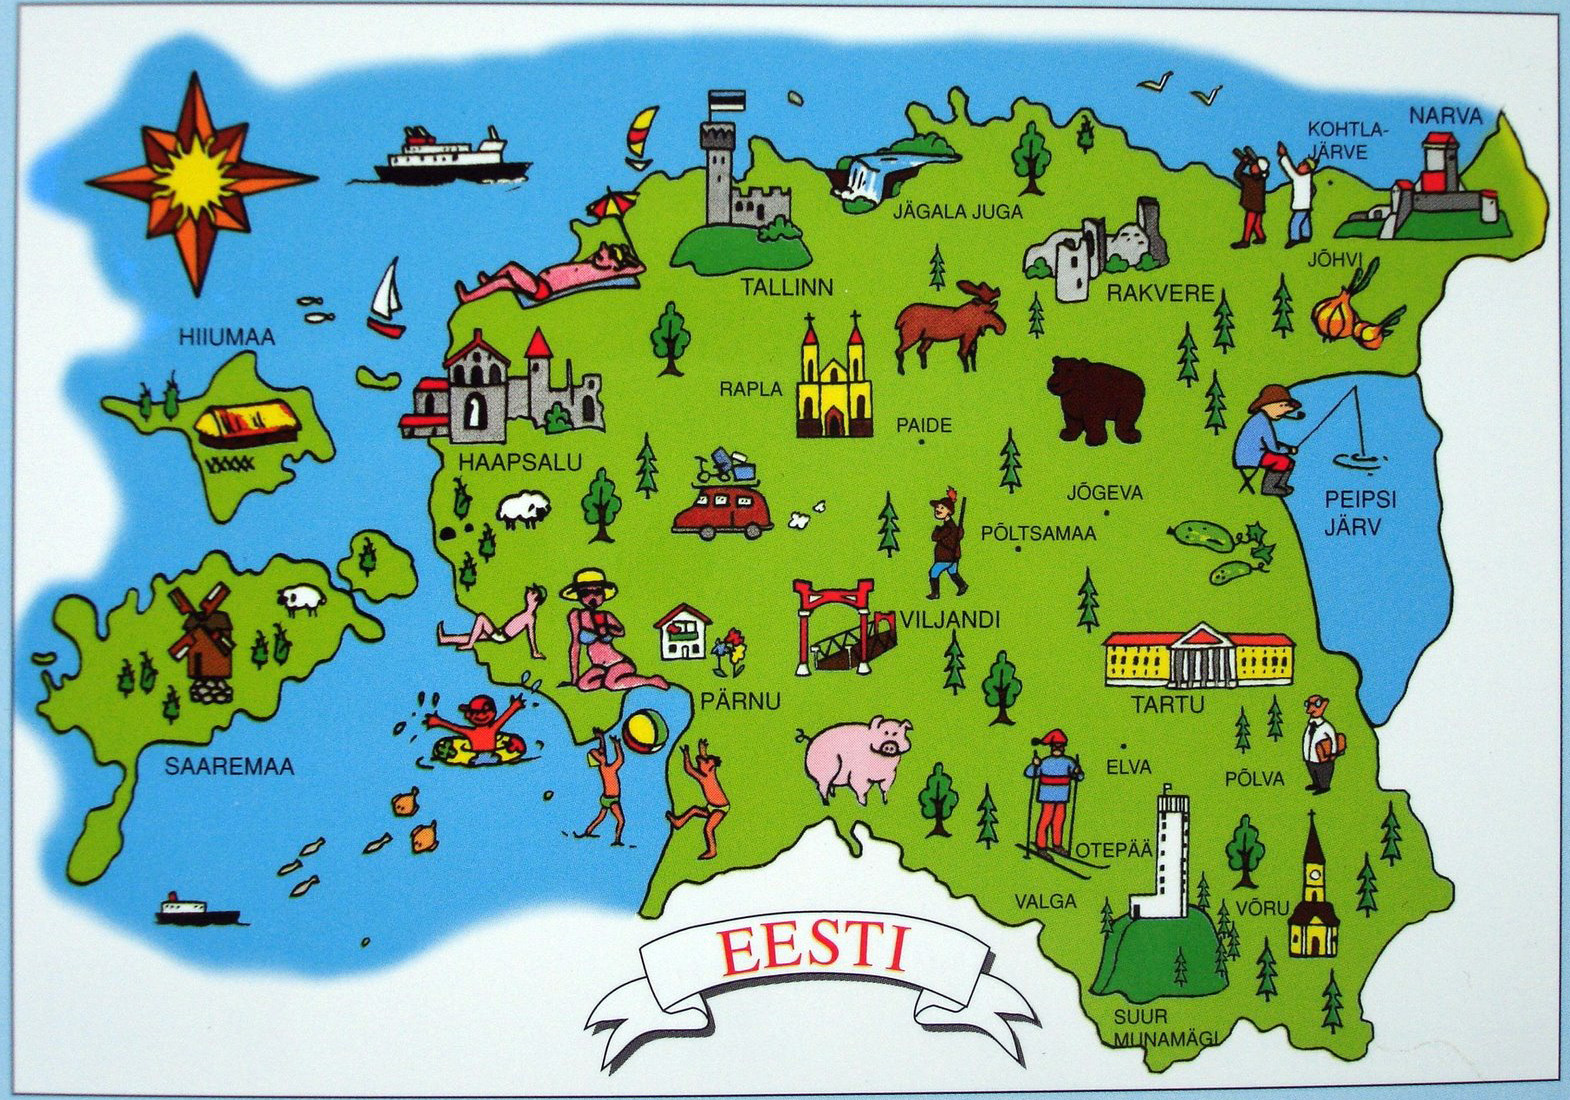 Tourist illustrated map of Estonia Estonia tourist illustrated map